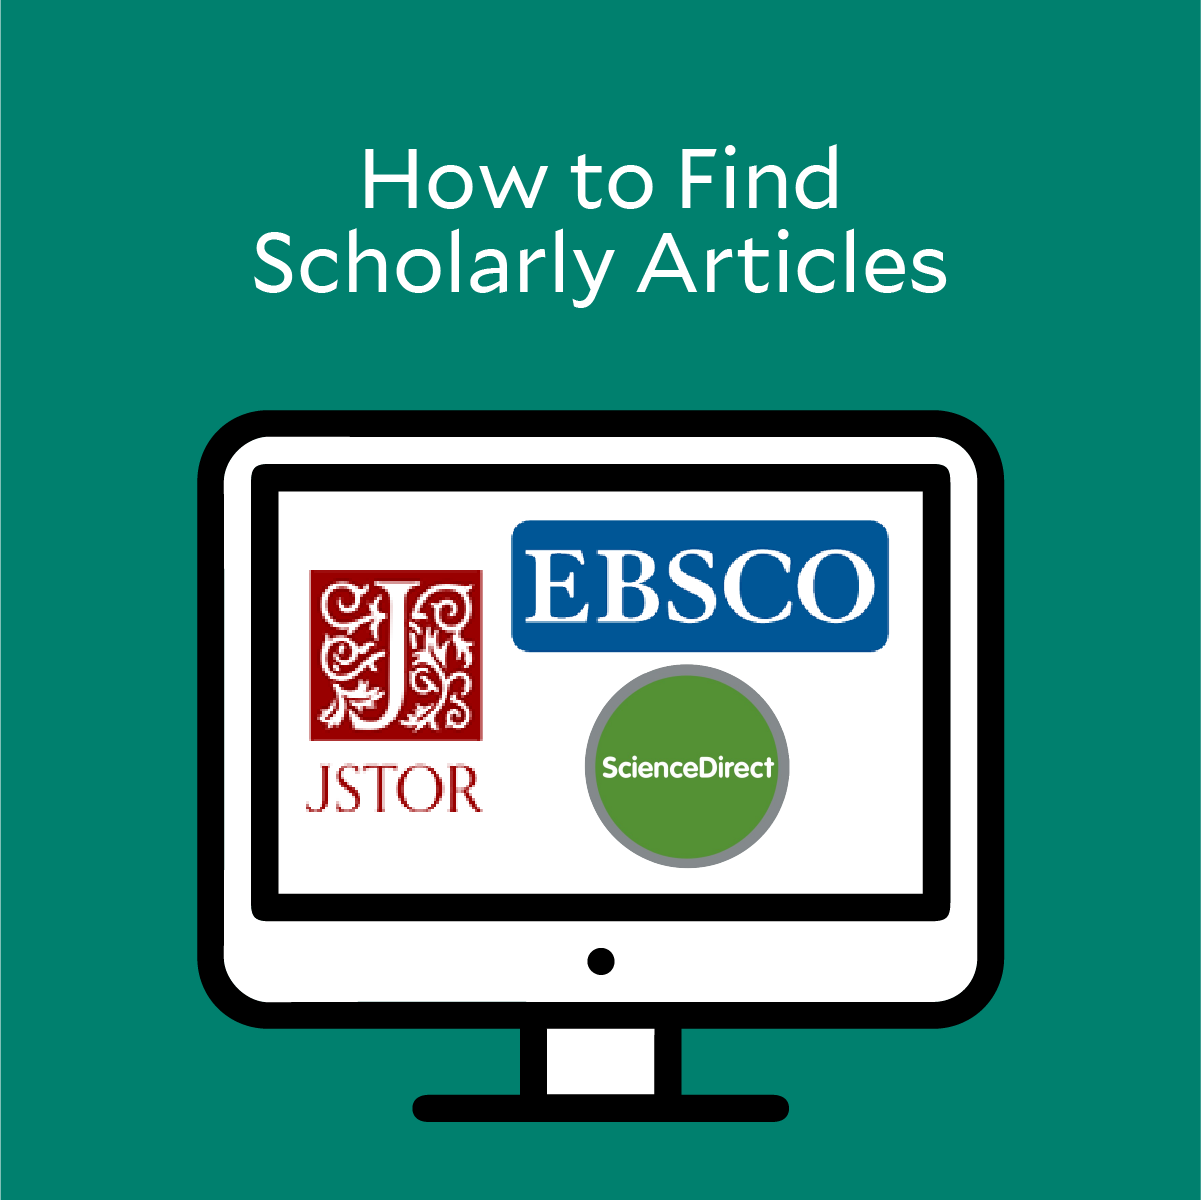 How to Find Scholarly Articles